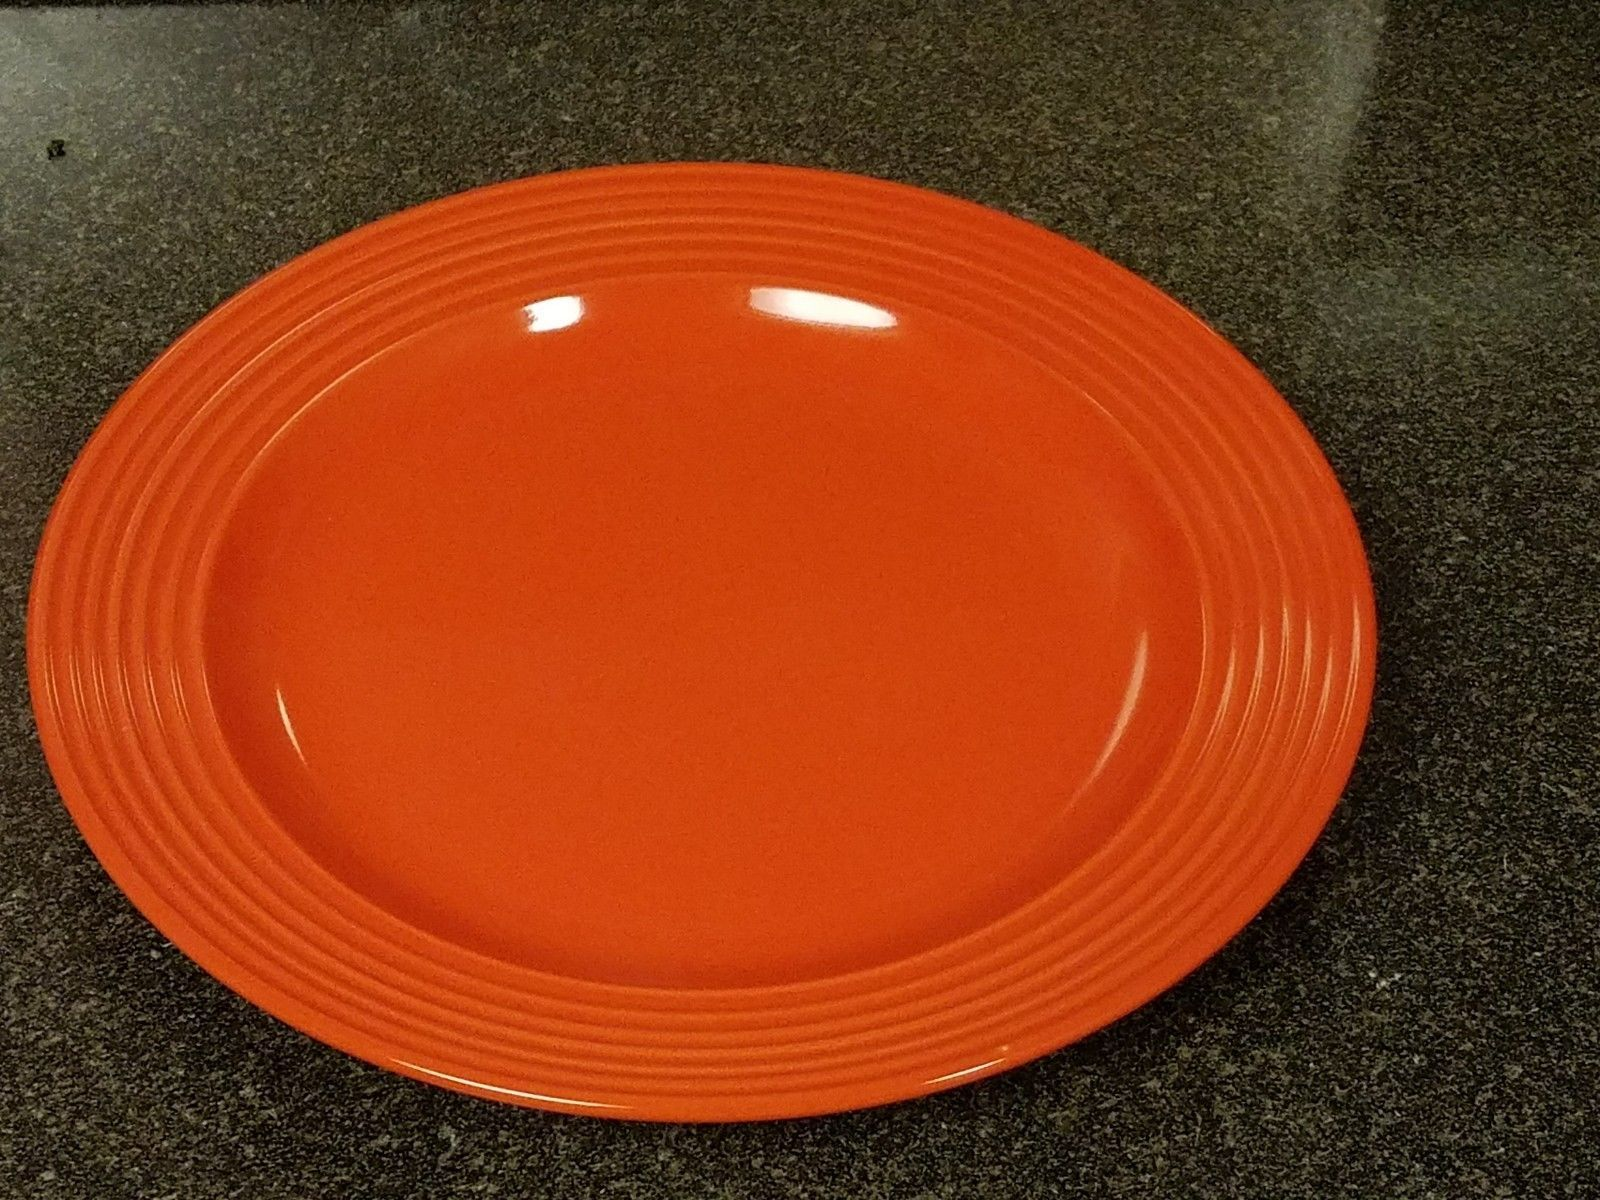 Primary image for ROYAL NORFOLK Classic Orange Dinner Plate Microwave and Dishwasher Safe